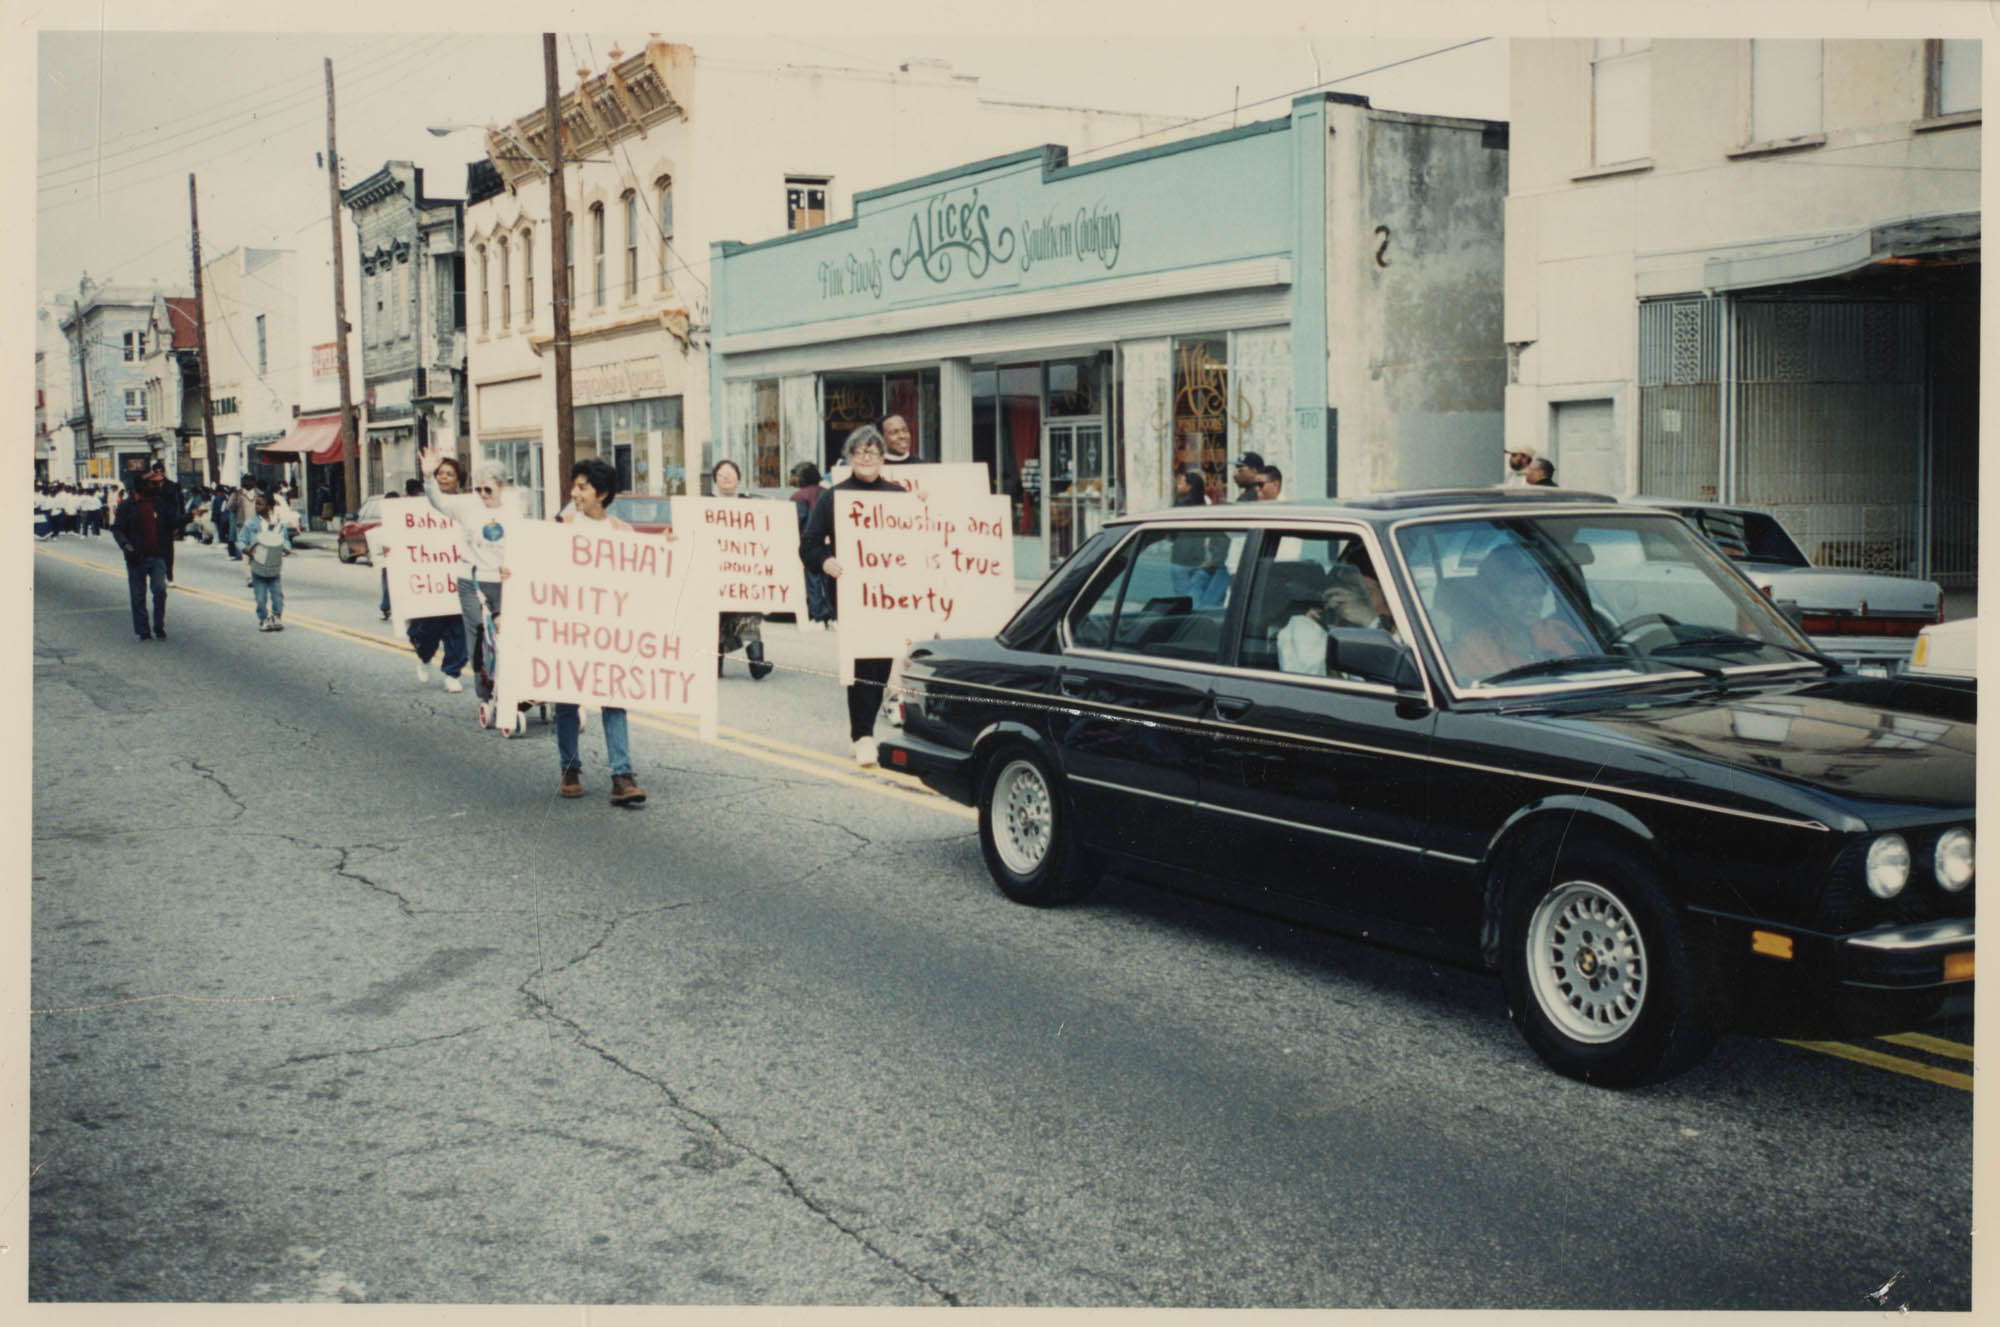 Photograph of People in a Parade